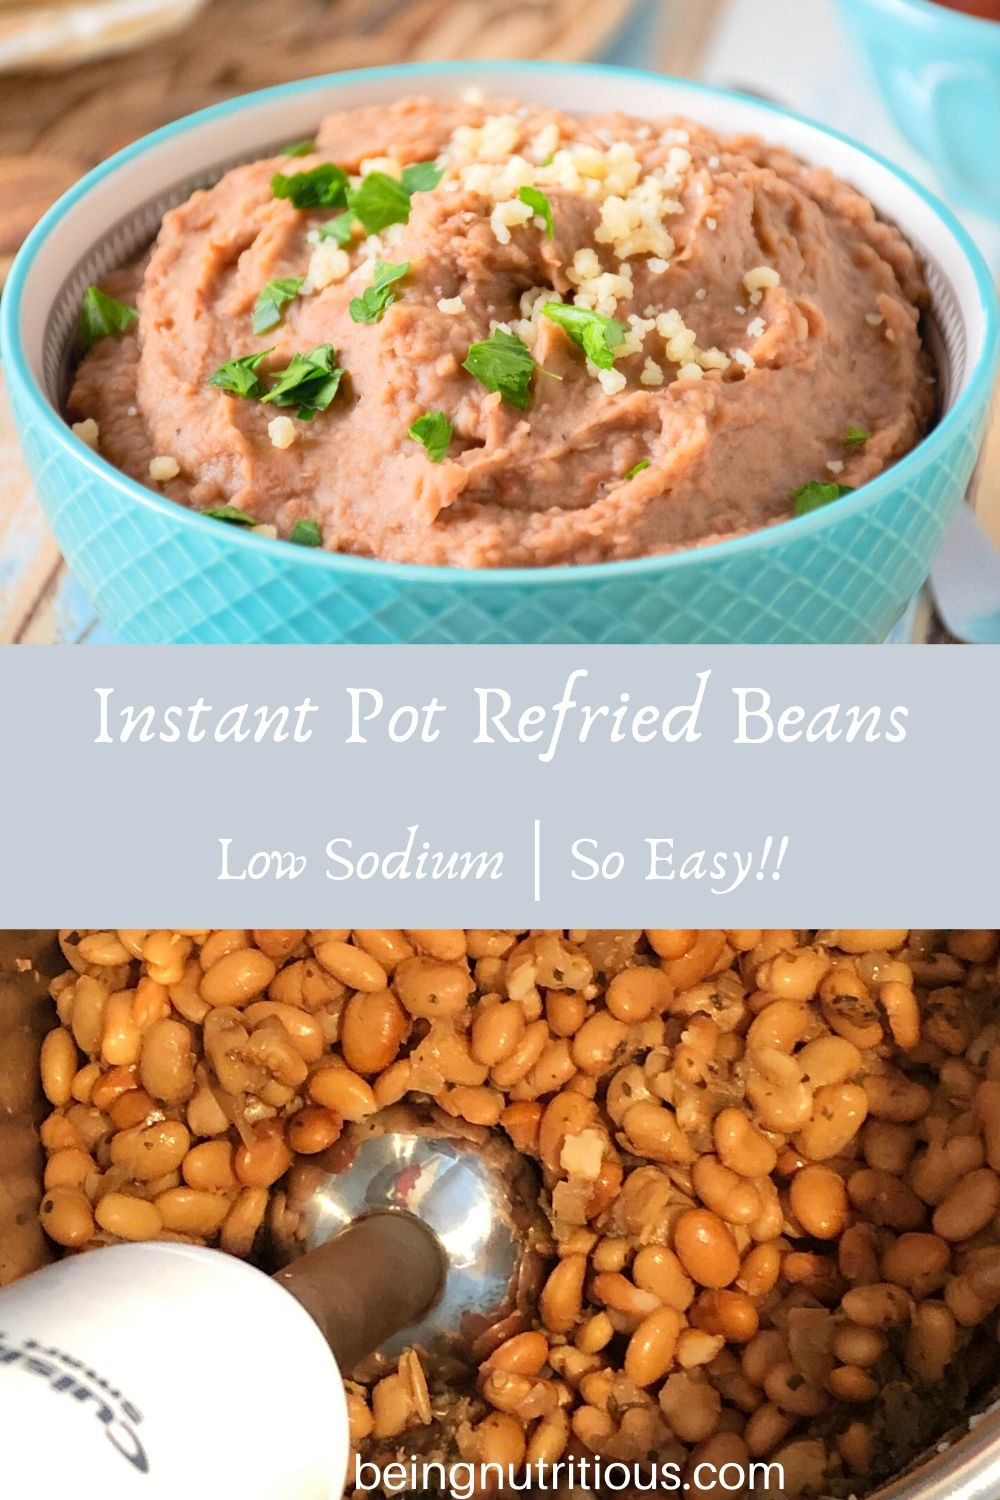 Bowl of refried beans on the top of the picture, with a pot of cooked pinto beans on the bottom with an immersion blender in them.